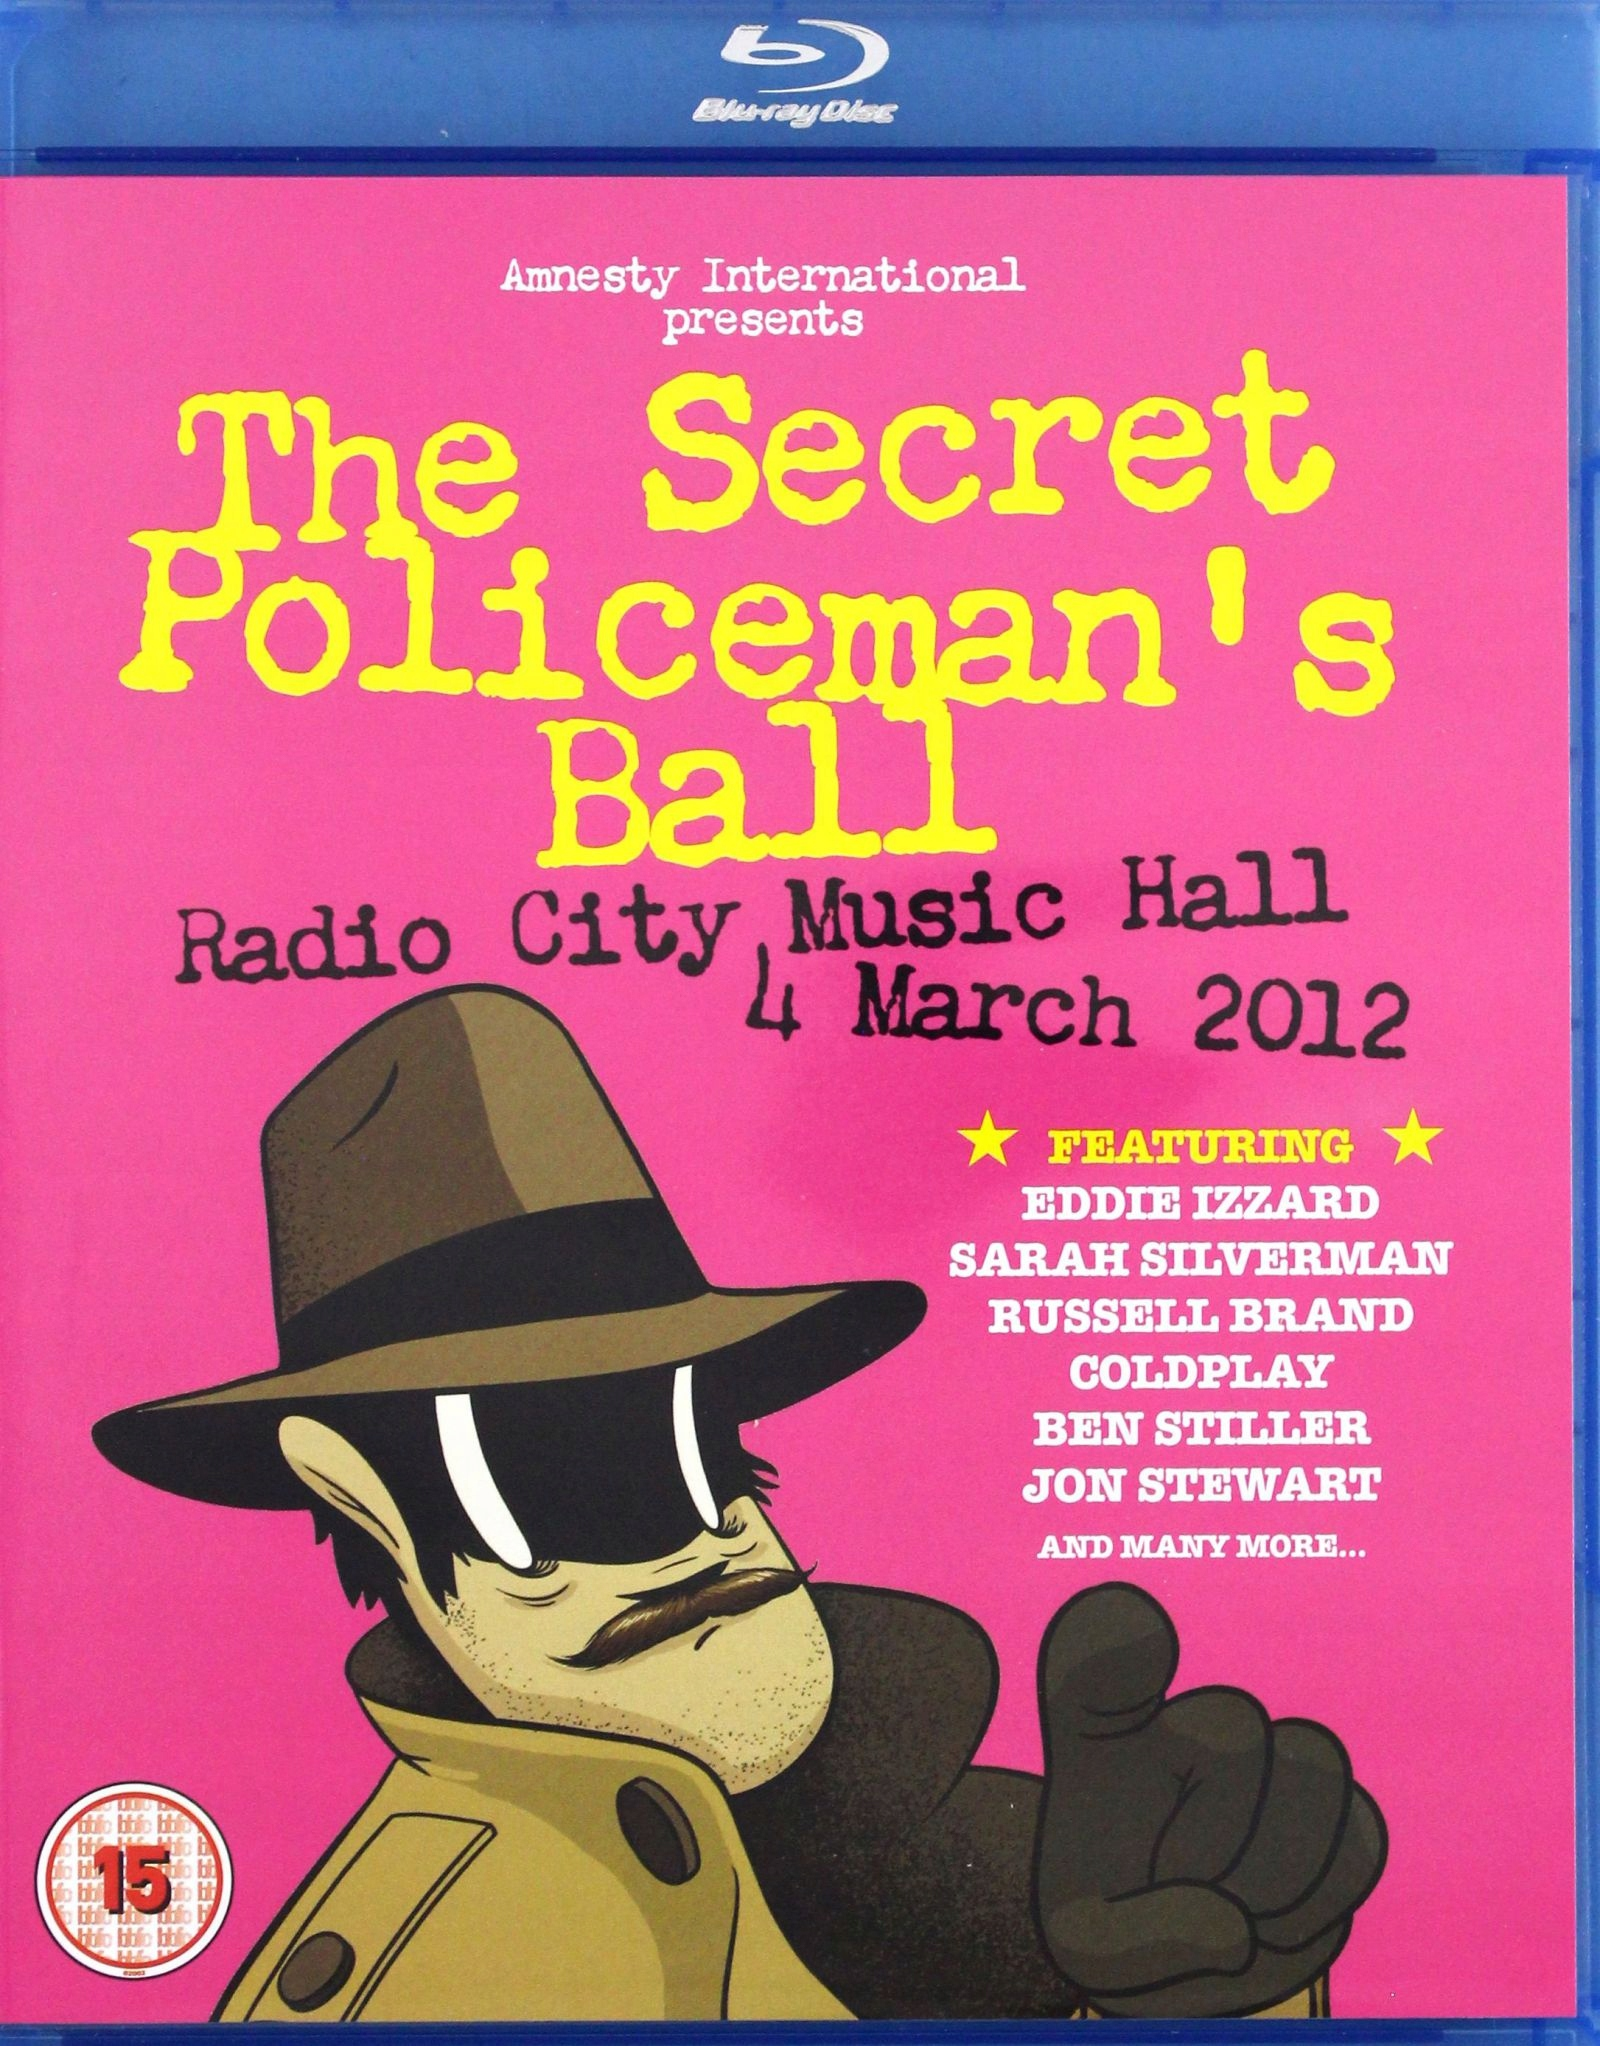 SECRET POLICEMANS BALL - RADIO CITY MUSIC HALL 4 M